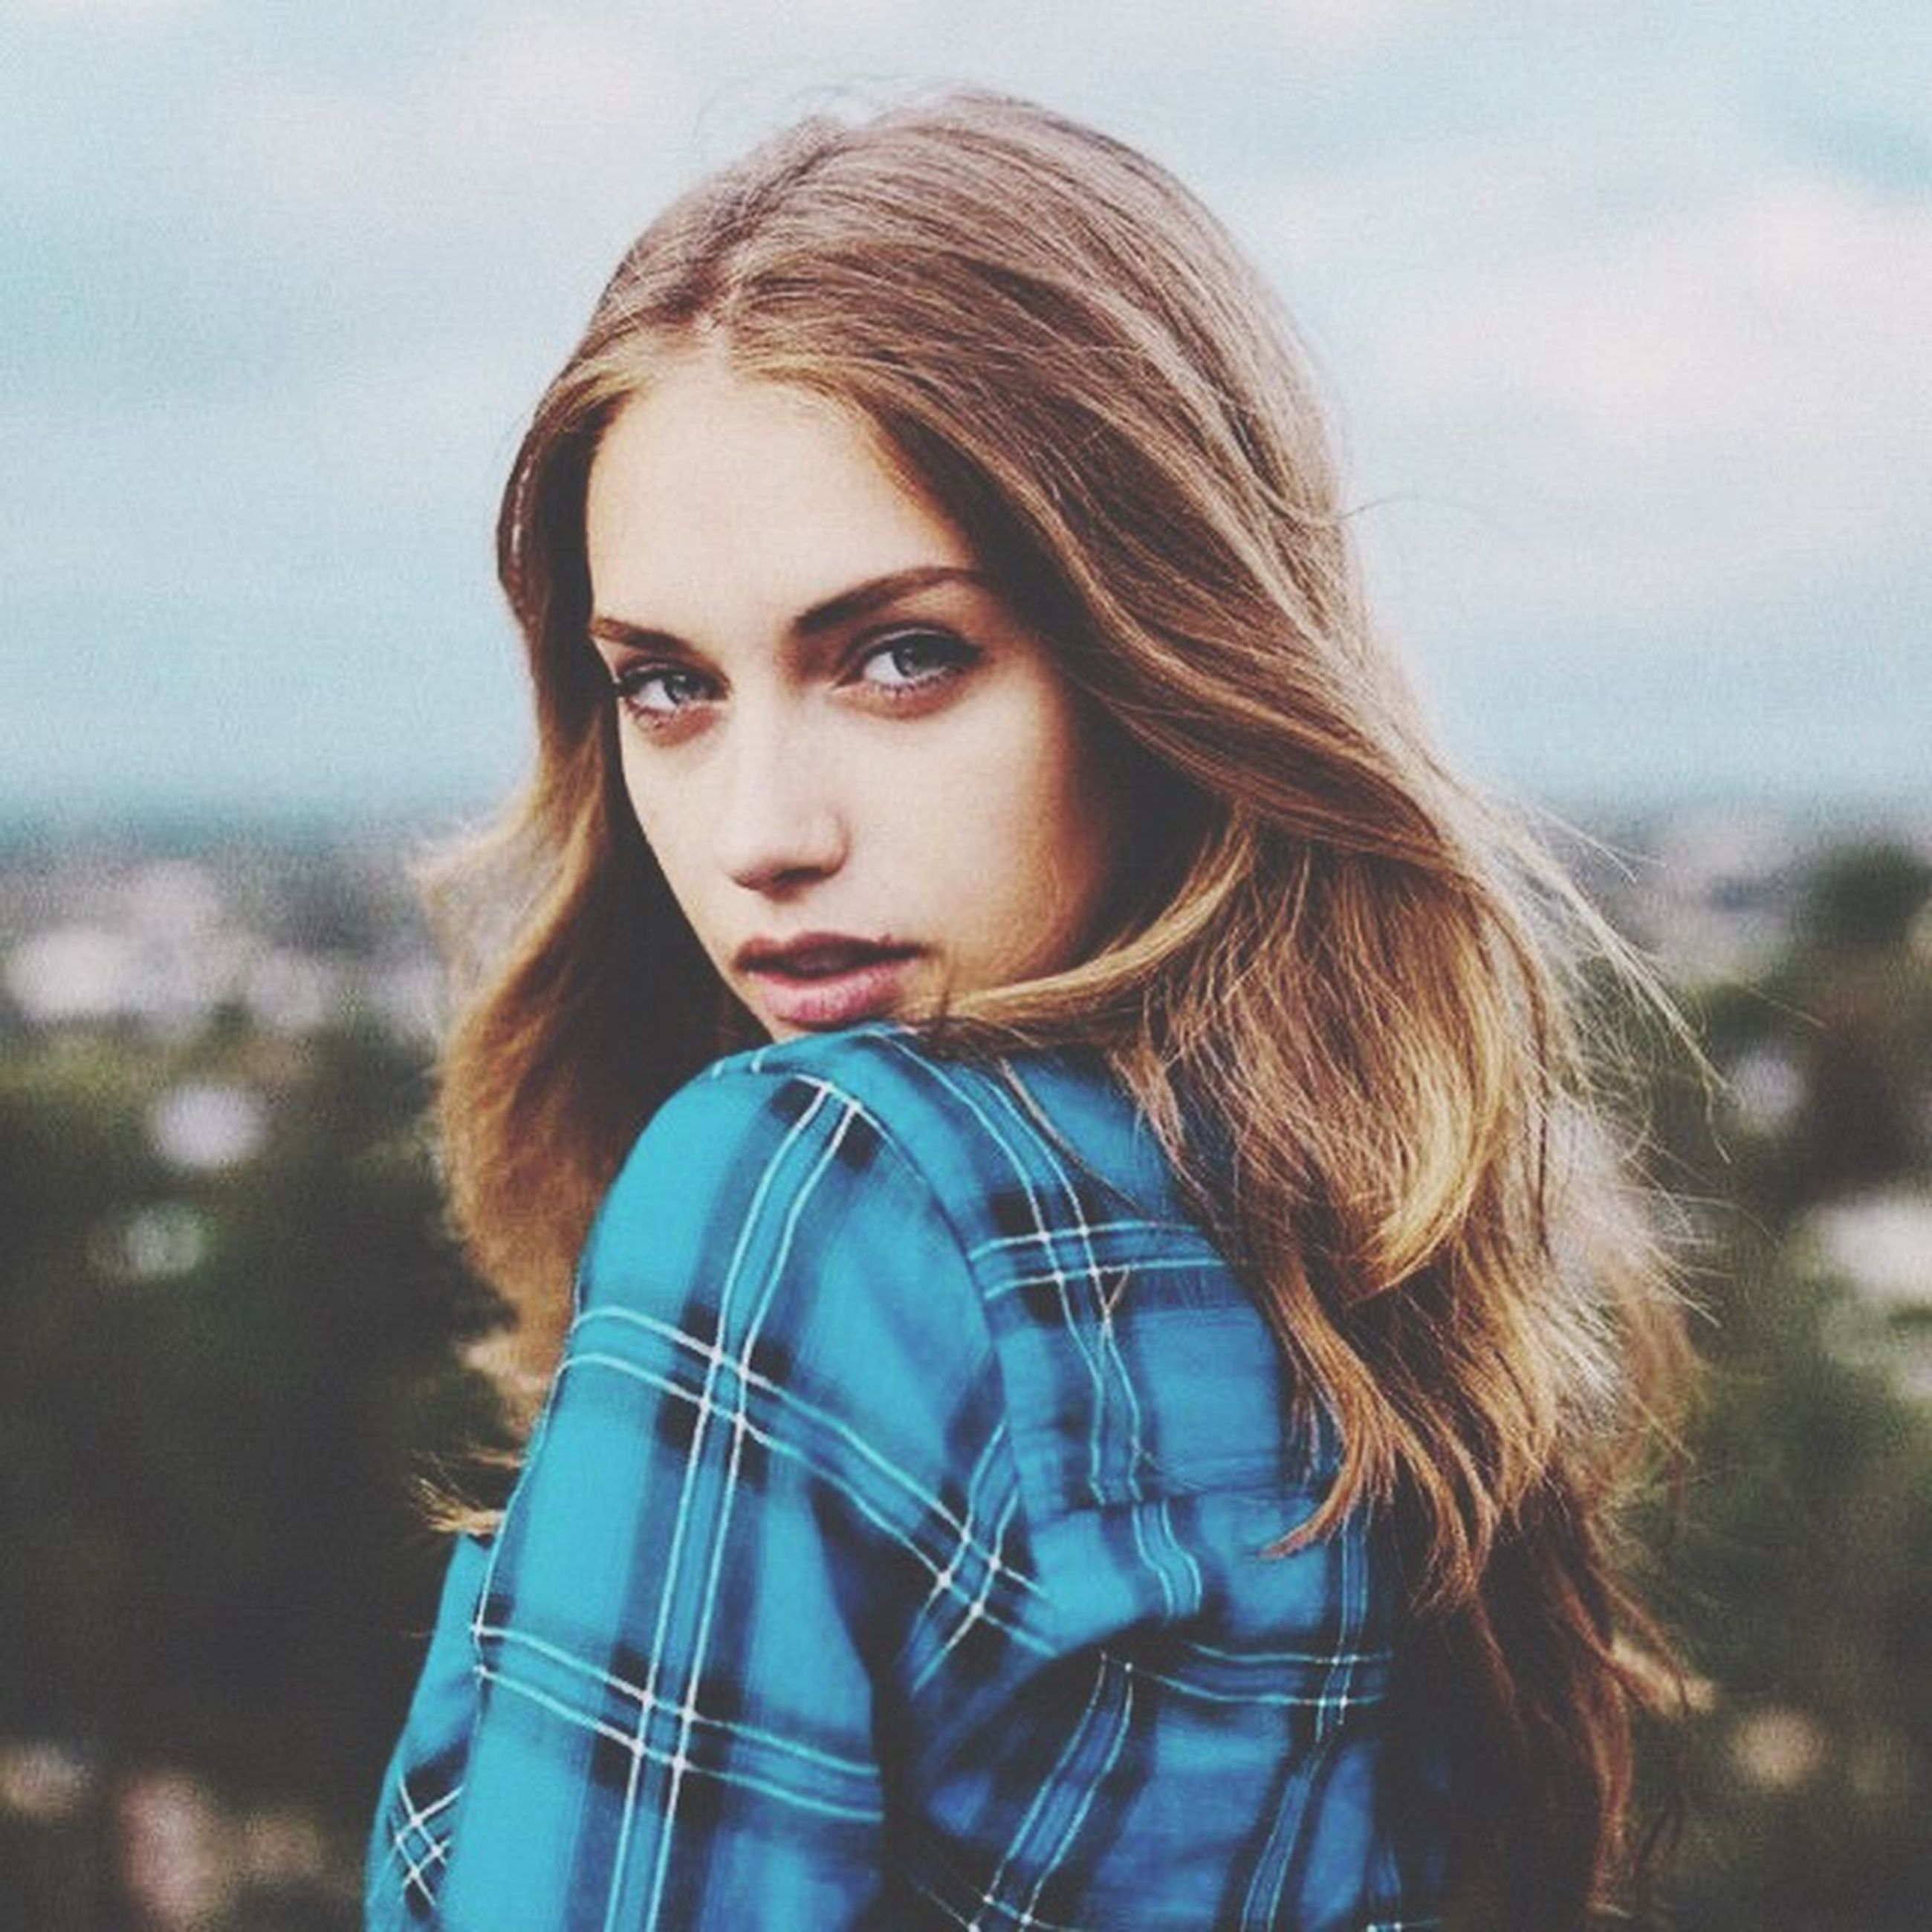 long hair, young adult, young women, person, lifestyles, headshot, focus on foreground, portrait, leisure activity, looking at camera, brown hair, casual clothing, waist up, front view, head and shoulders, blond hair, smiling